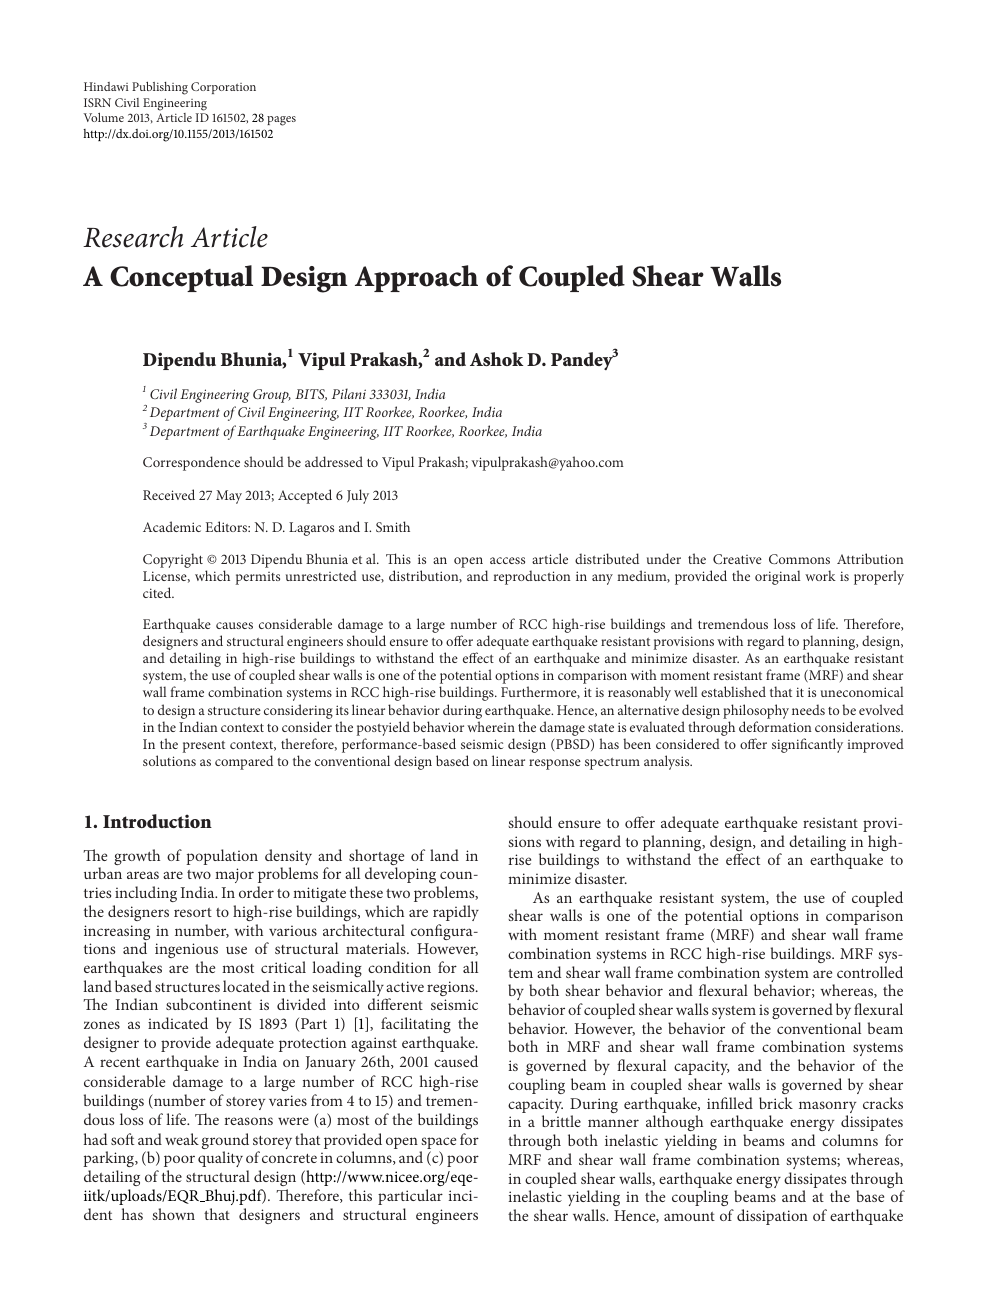 A Conceptual Design Approach of Coupled Shear Walls – topic of